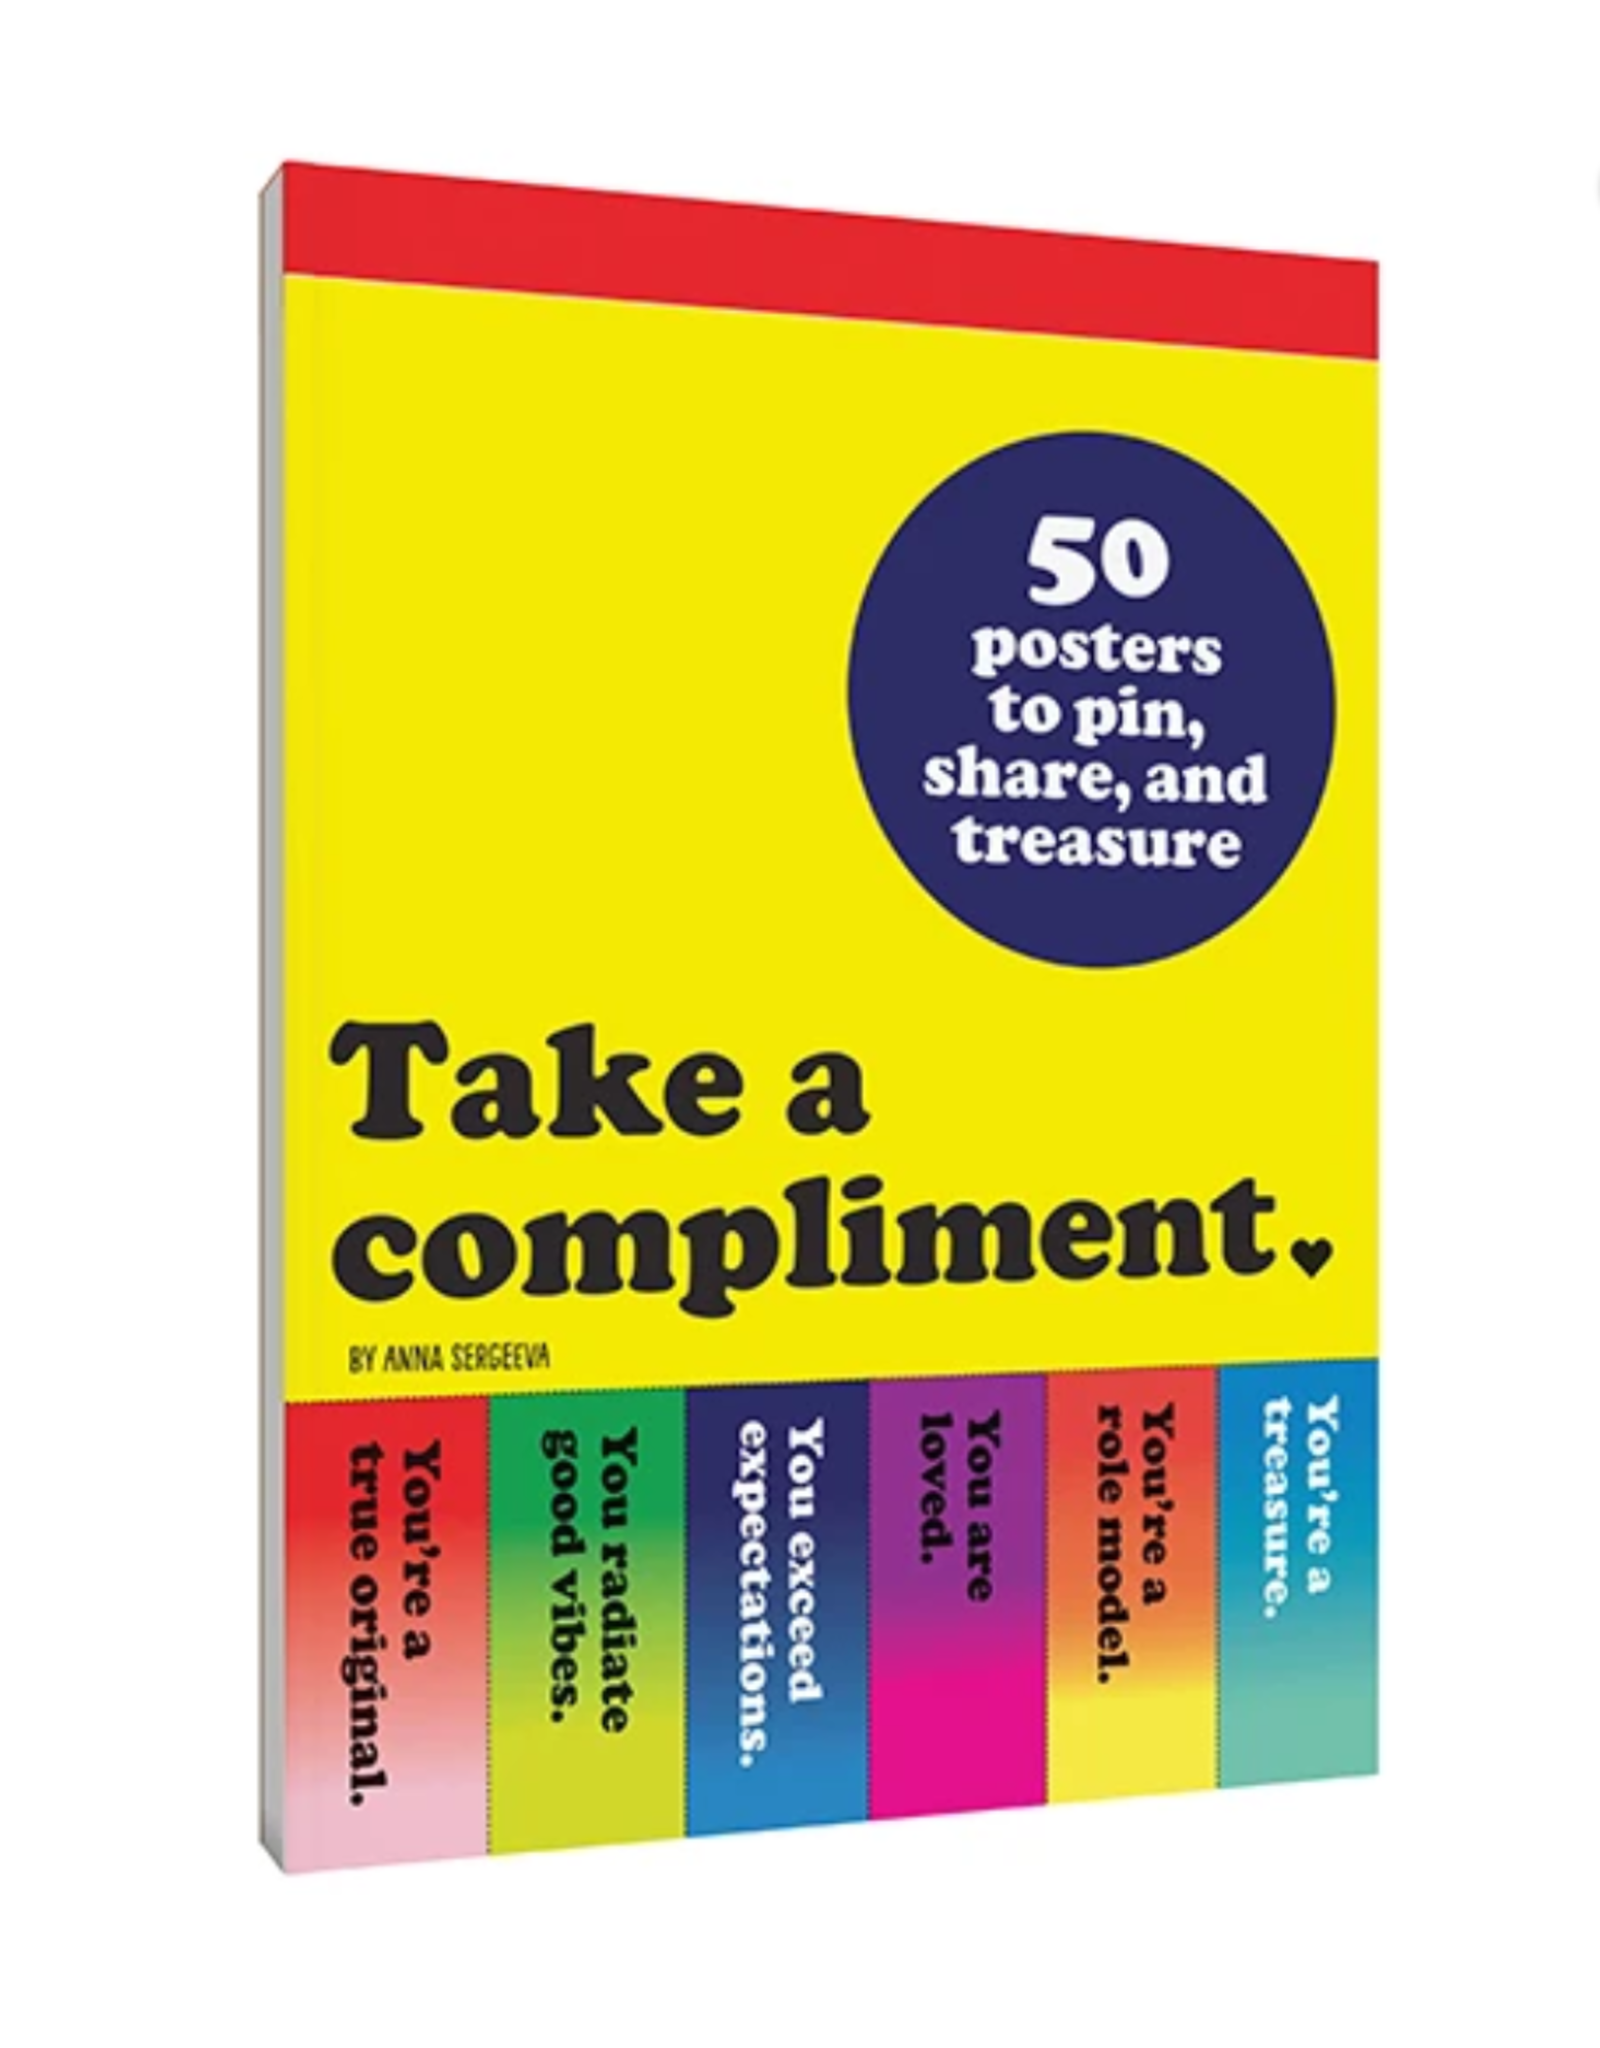 CHRONICLE BOOKS TAKE A COMPLIMENT 50 POSTERS